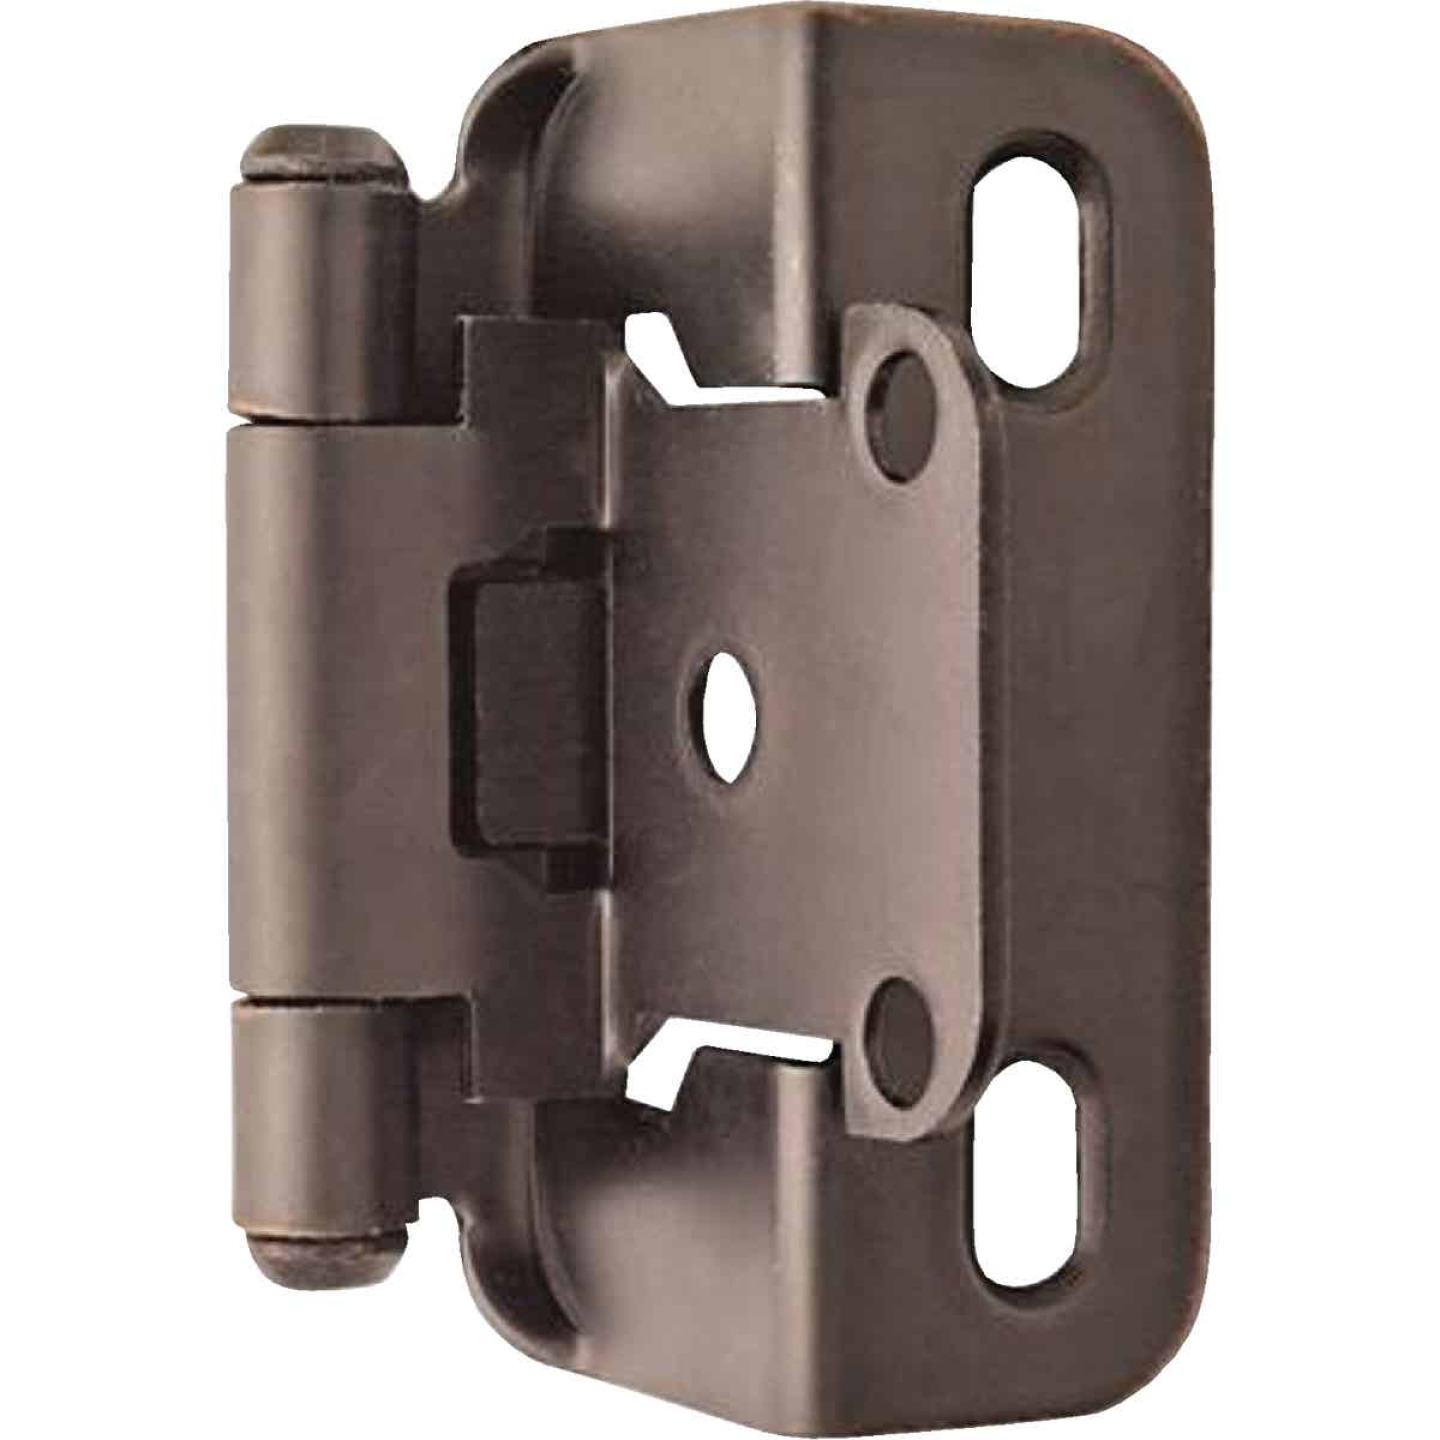 Amerock Oil Rubbed Bronze Self-Closing Partial Wrap Overlay Hinge (2-Pack) Image 1